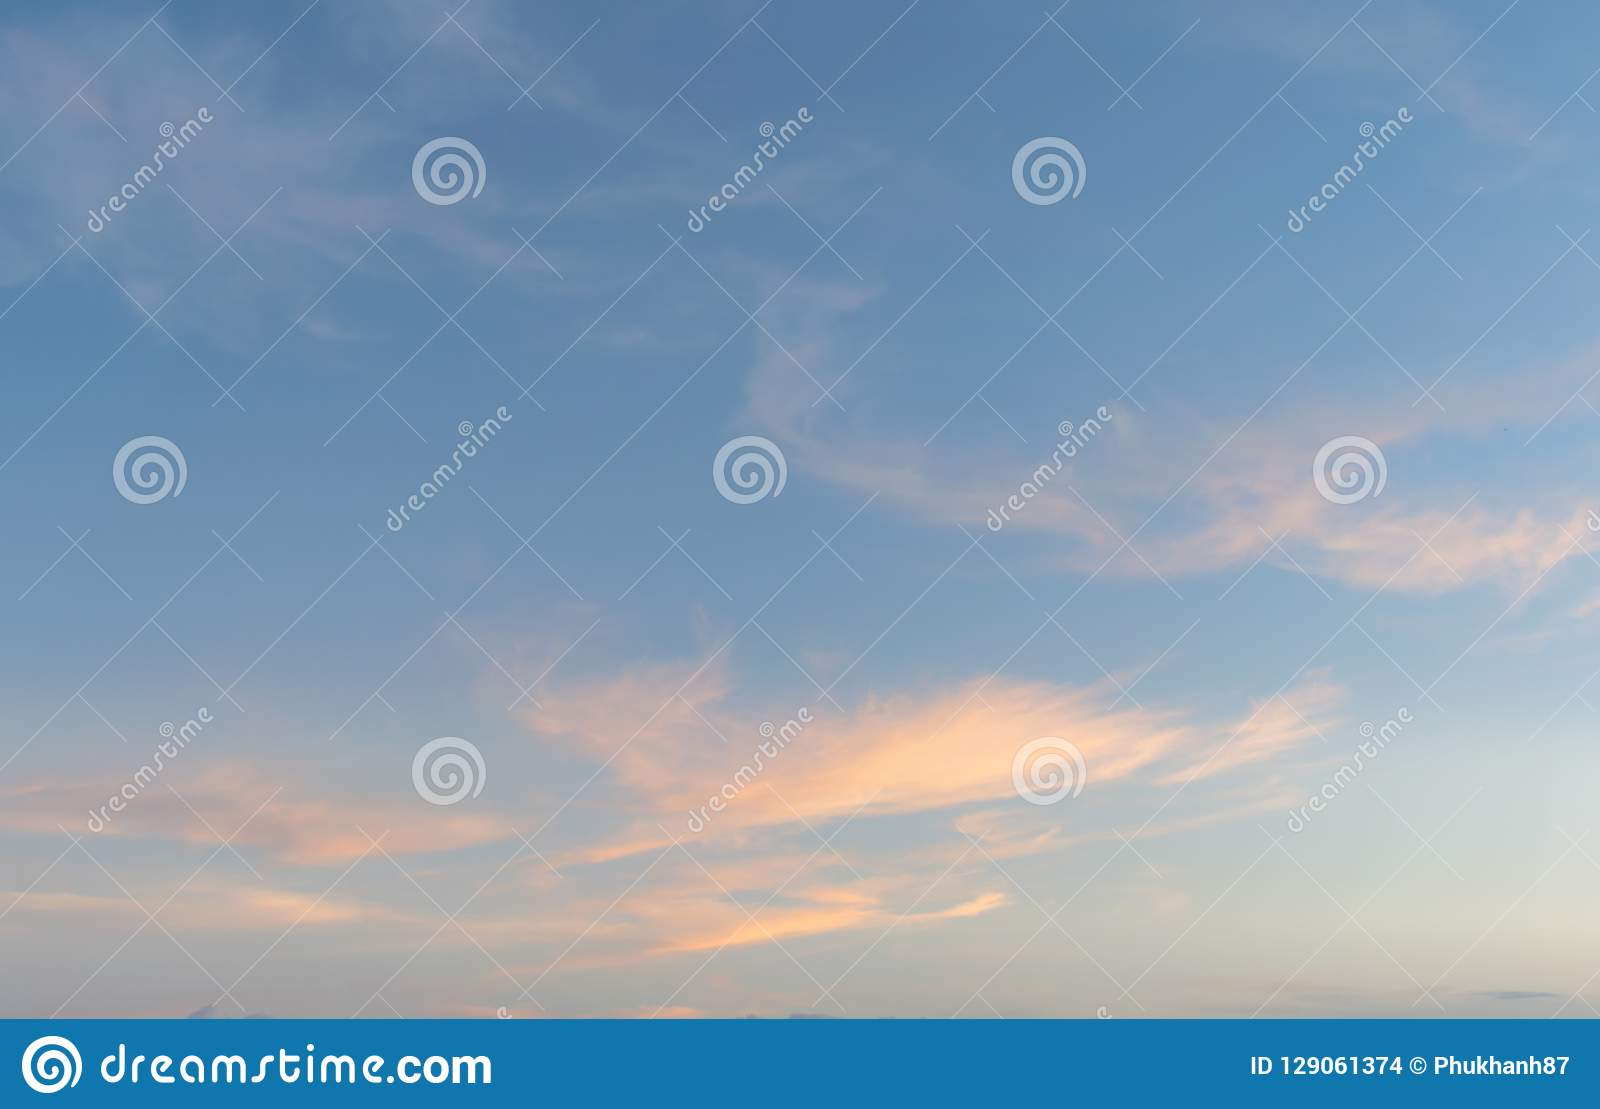 Background with magic of the sky and clouds at dawn and twilight part 15